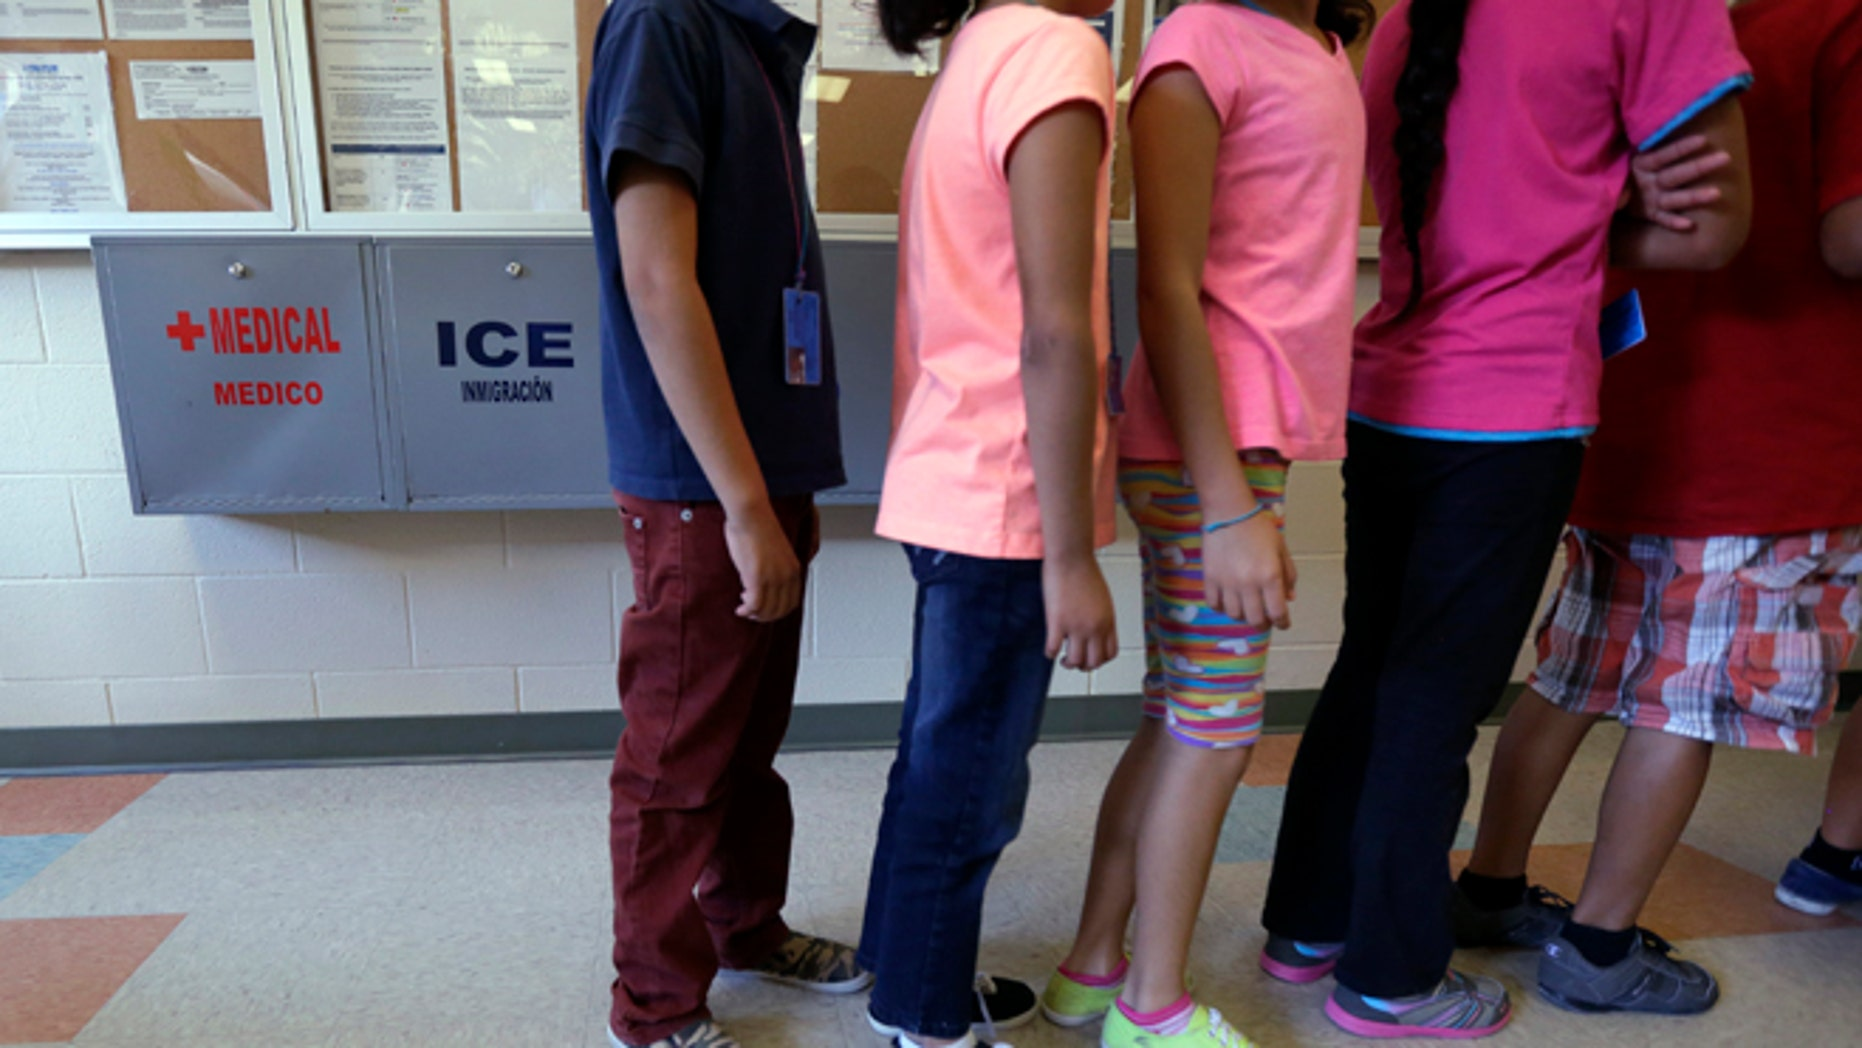 FILE - In this Sept. 10, 2014 file photo, detained immigrant children line up in the cafeteria at the Karnes County Residential Center in Karnes City, Texas. Karnes, one of the nation's largest detention centers for families caught crossing the southern U.S. border received a temporary residential child-care license from the Texas Department of Family and Protective Services. DFPS spokesman Patrick Crimmins said Tuesday May 3, 2016, the agency granted the six-month license last week to the facility. (AP Photo/Eric Gay, File)